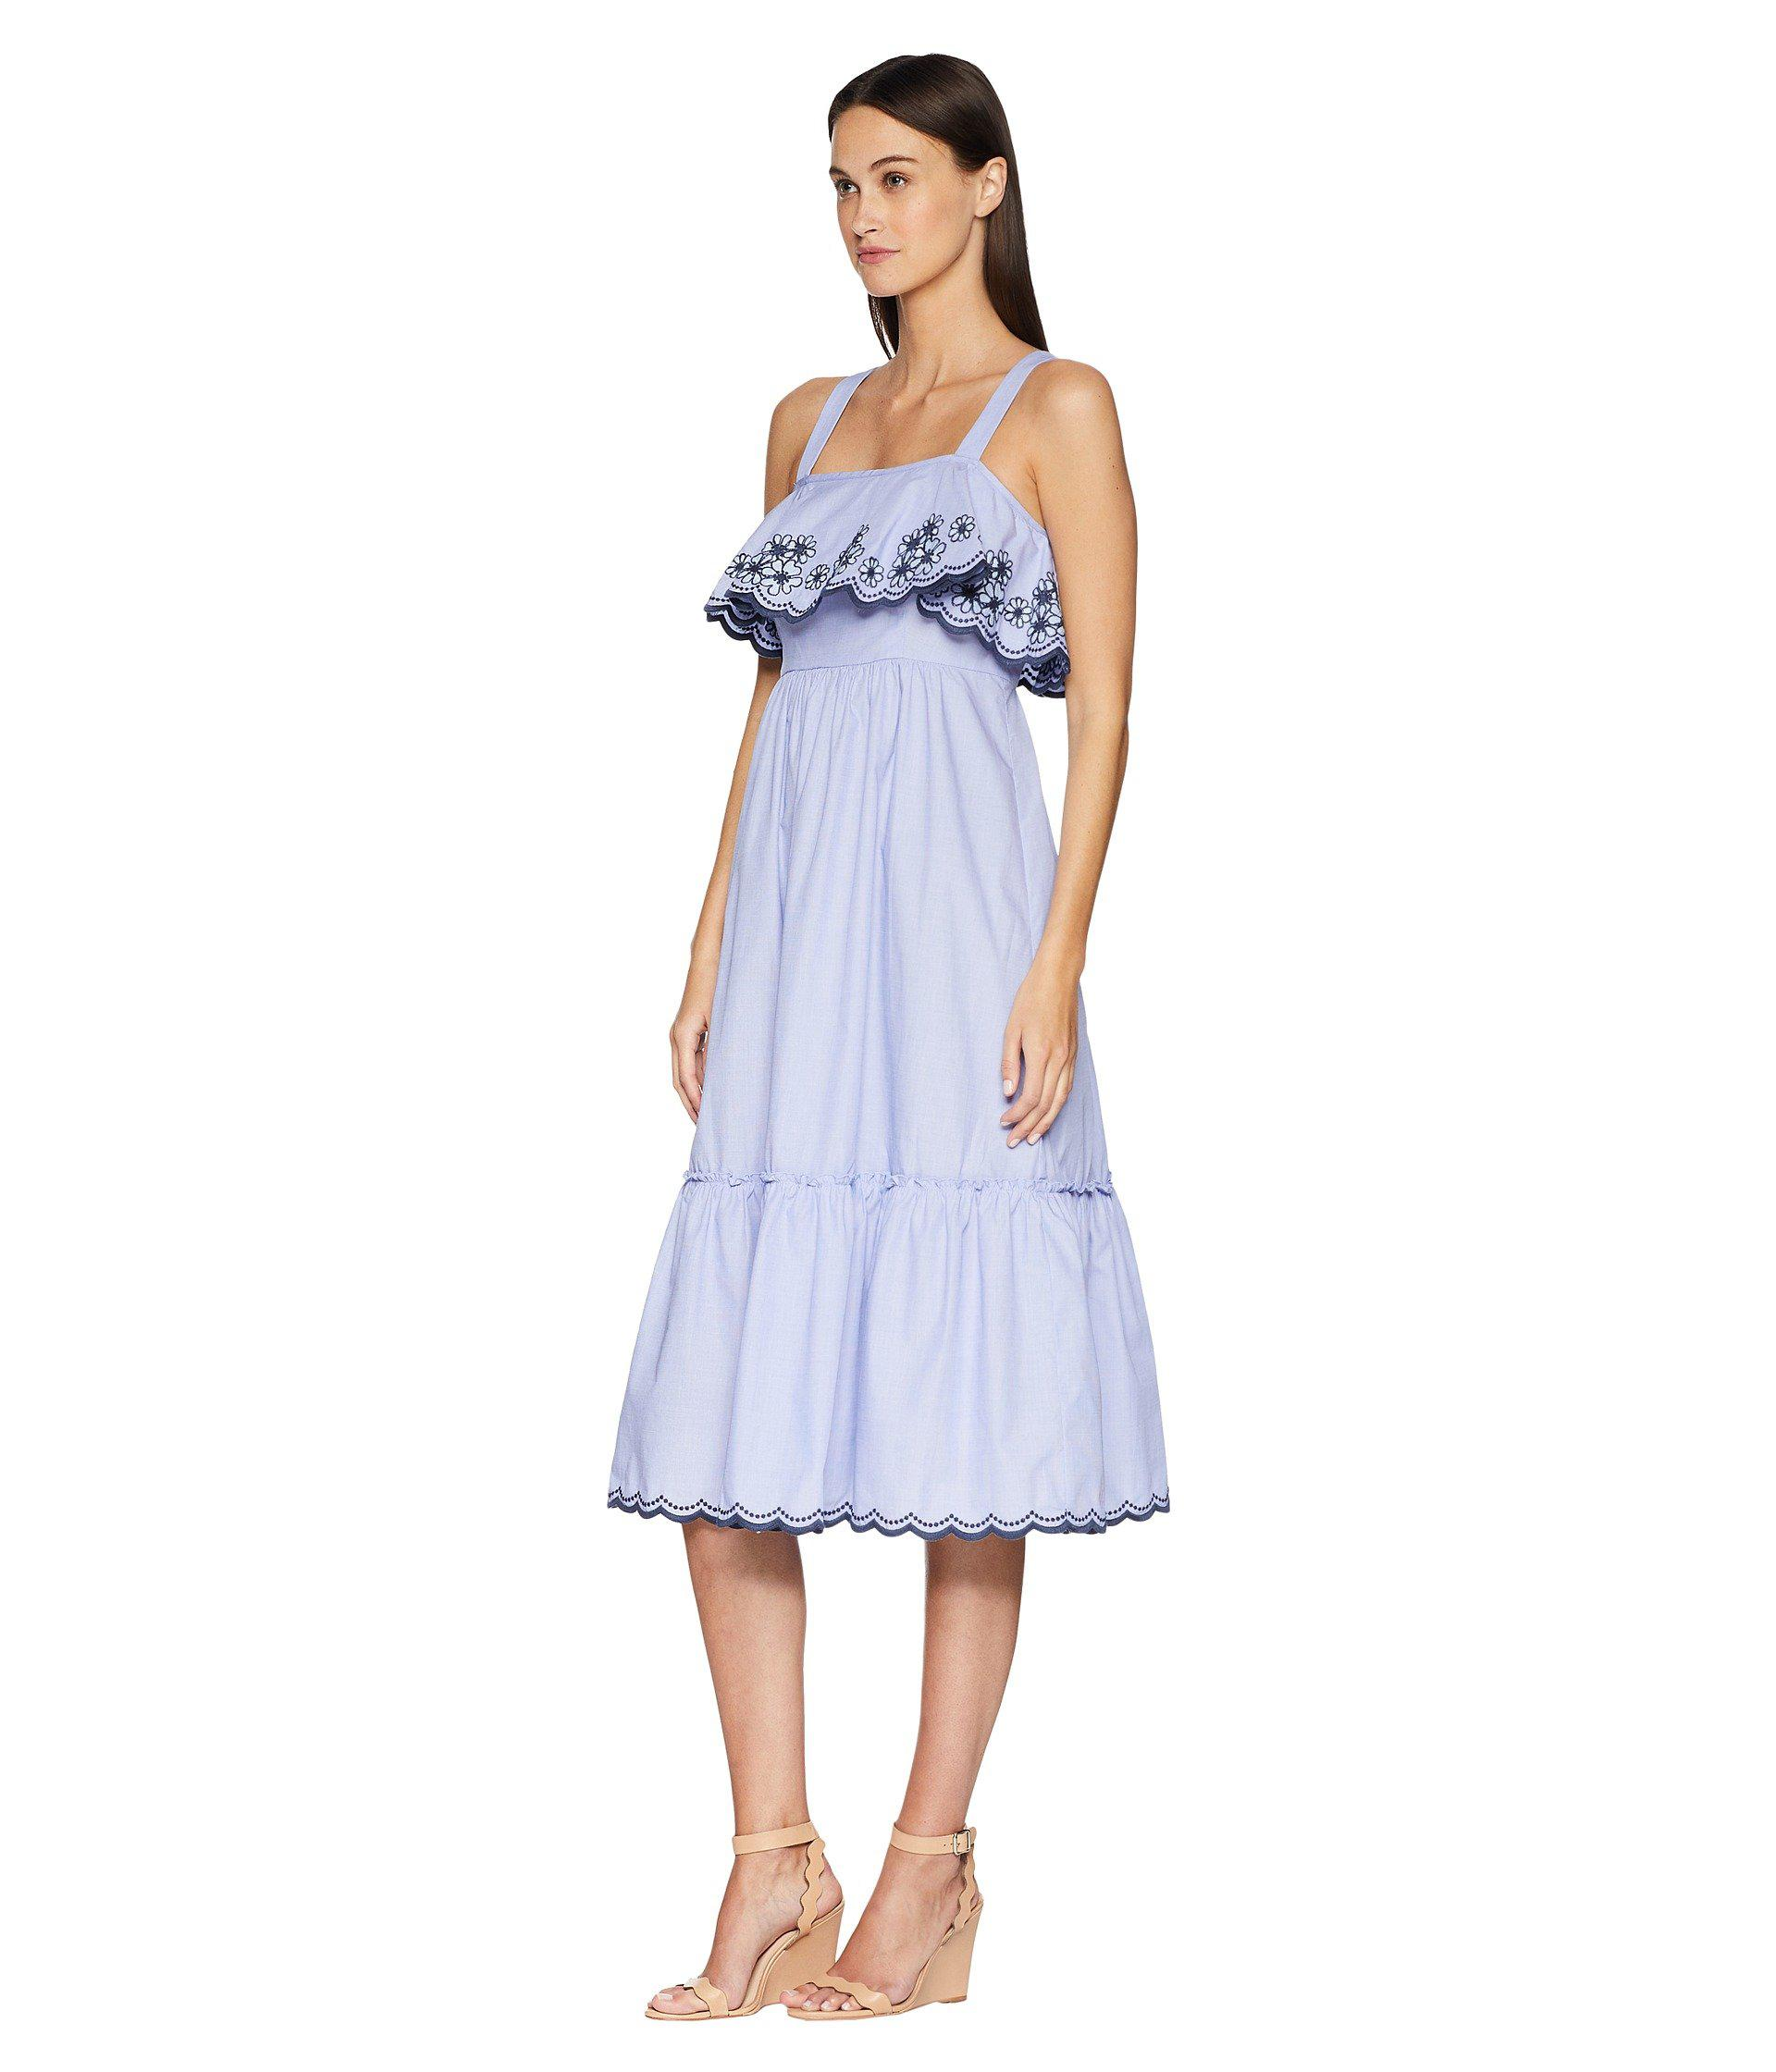 8291b8a5c4 Lyst - Kate Spade Daisy Embroidered Patio Dress in Blue - Save 64%